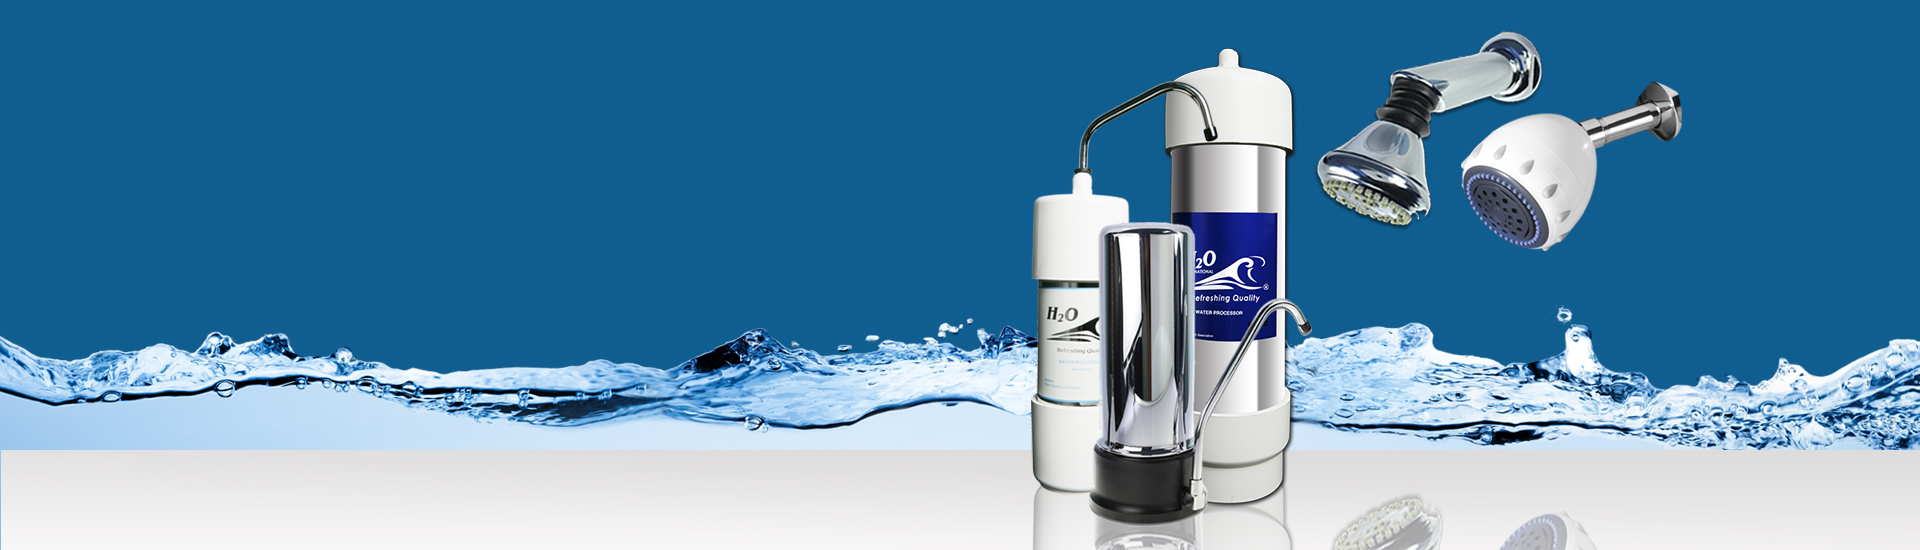 Countertop Water Filtration Systems